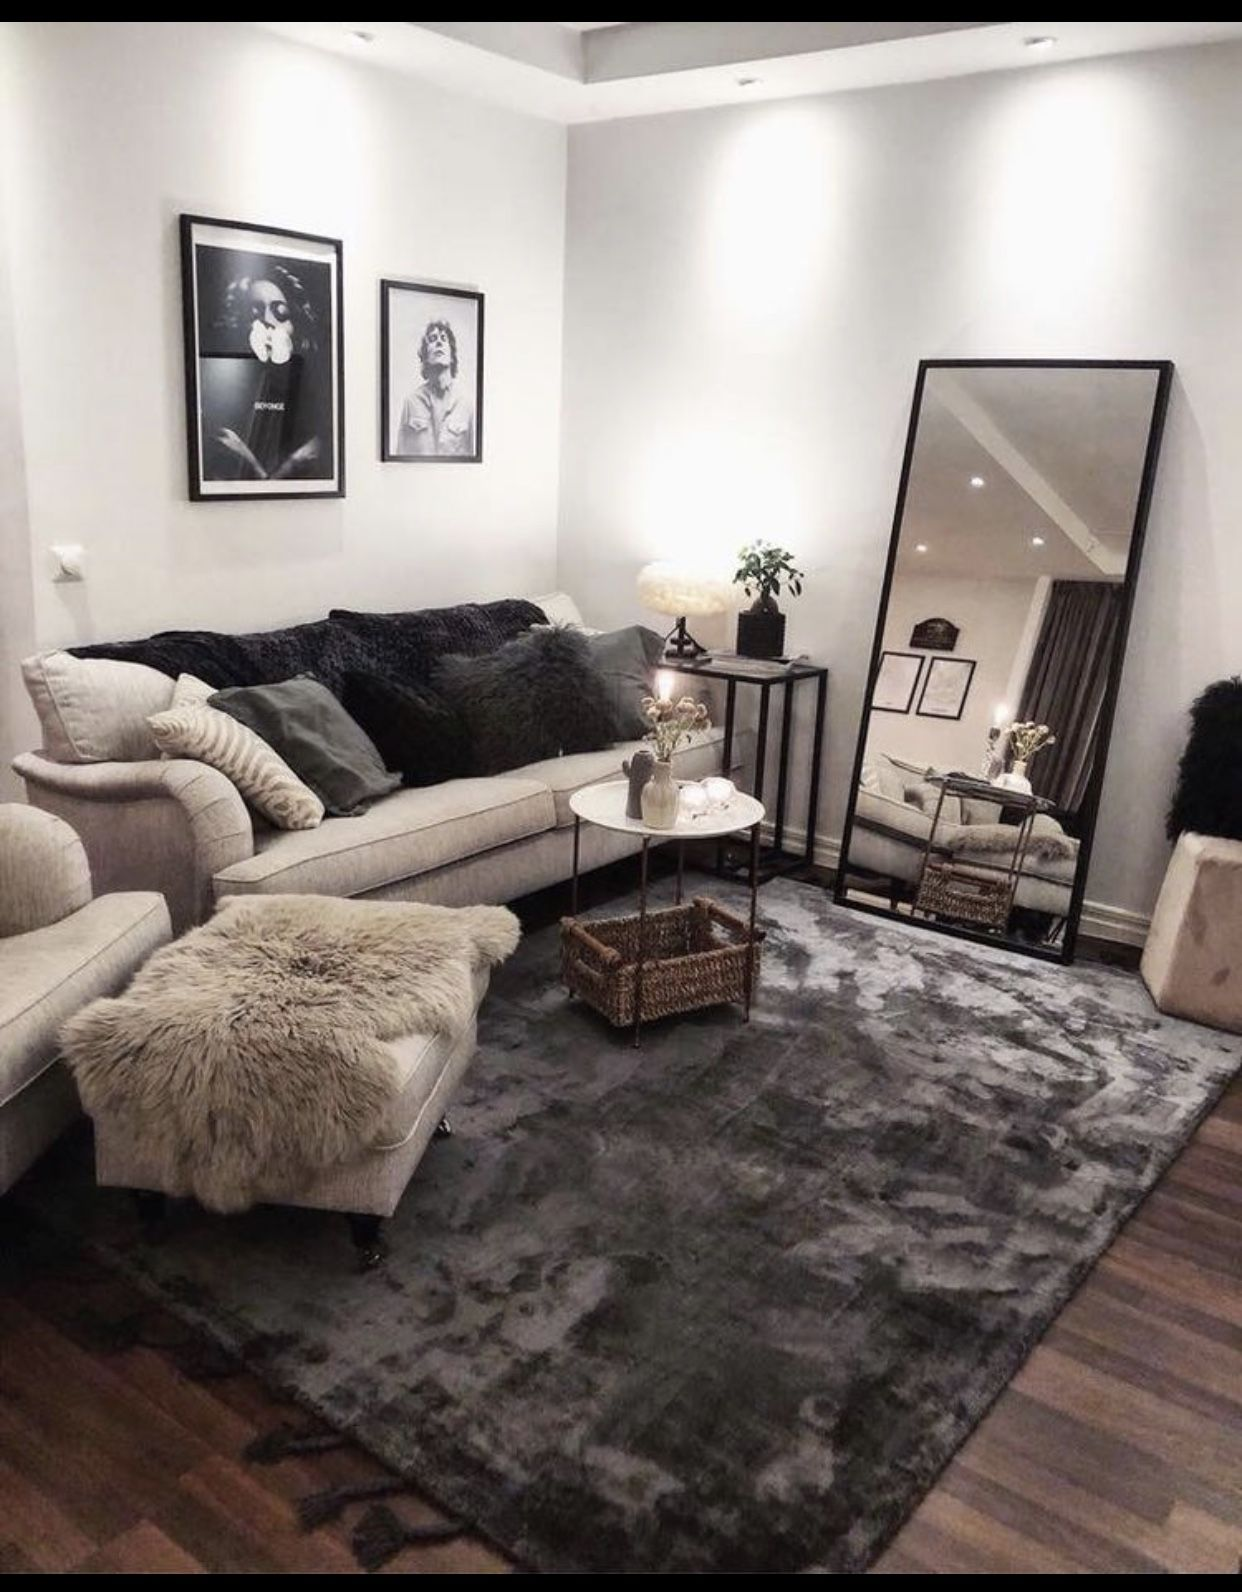 Pinterest: @Kekedanae18  Small apartment living room, First